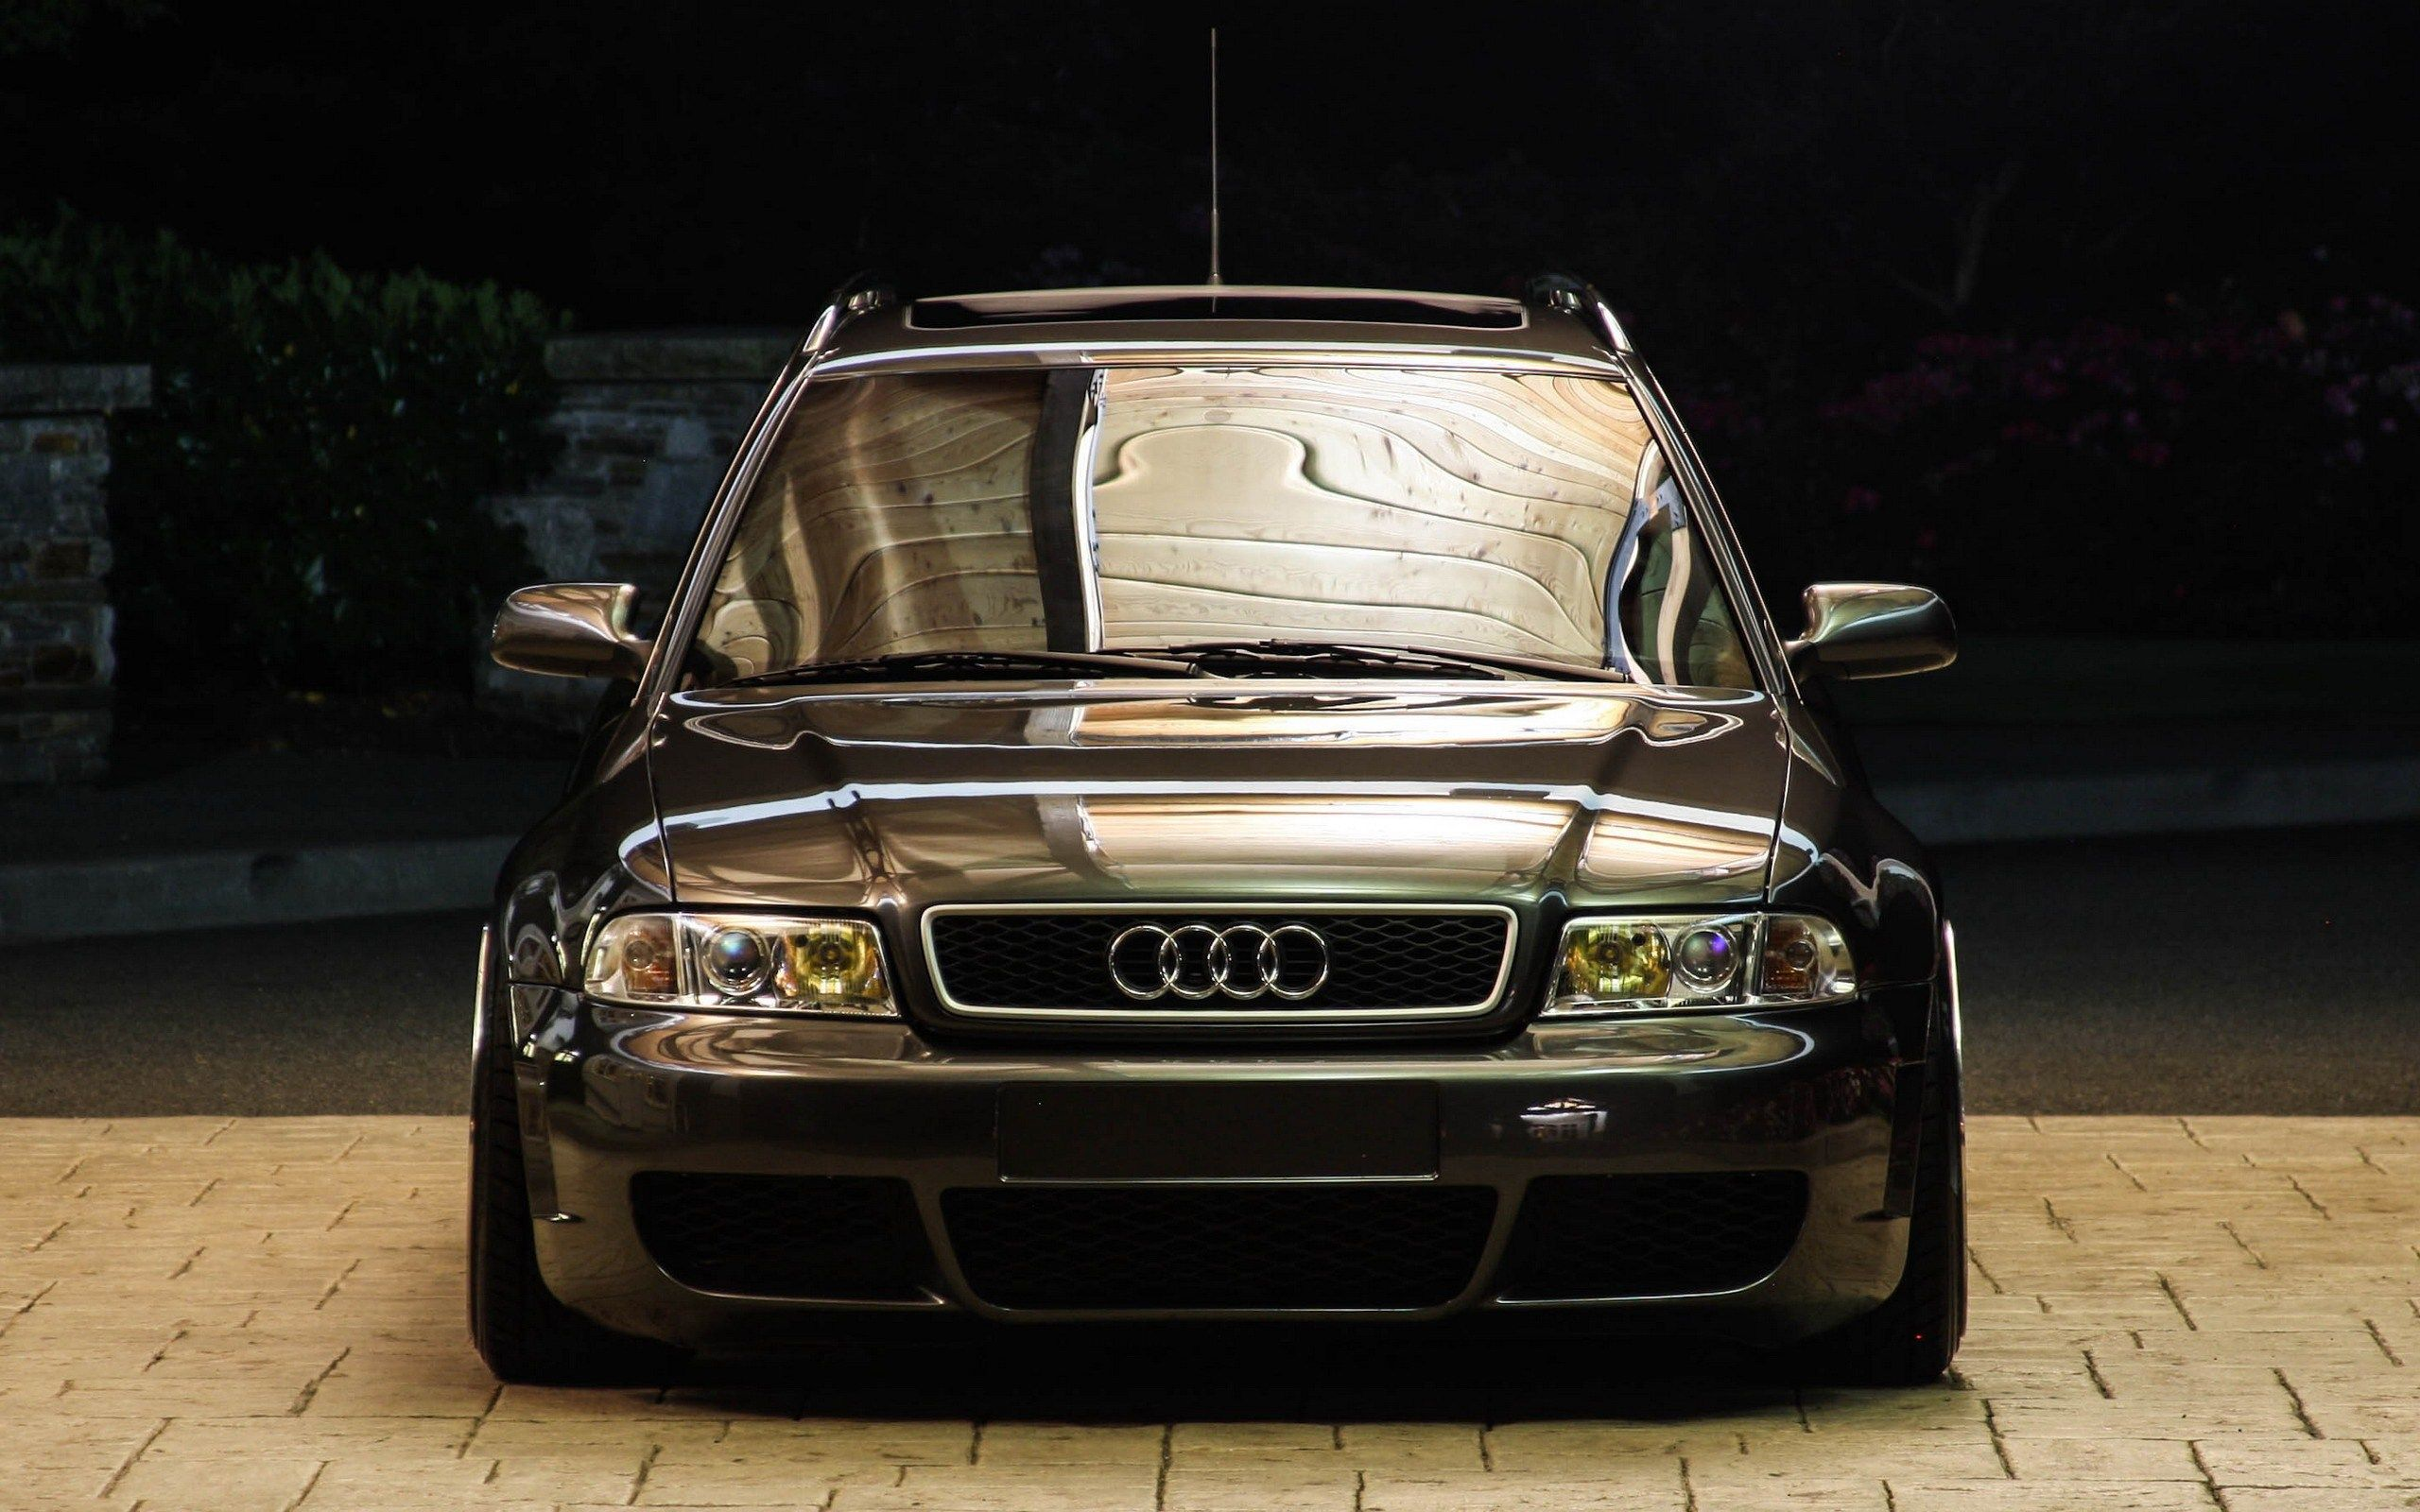 audi s4 b5 avant classic cars pinterest audi s4 car wallpapers and cars. Black Bedroom Furniture Sets. Home Design Ideas